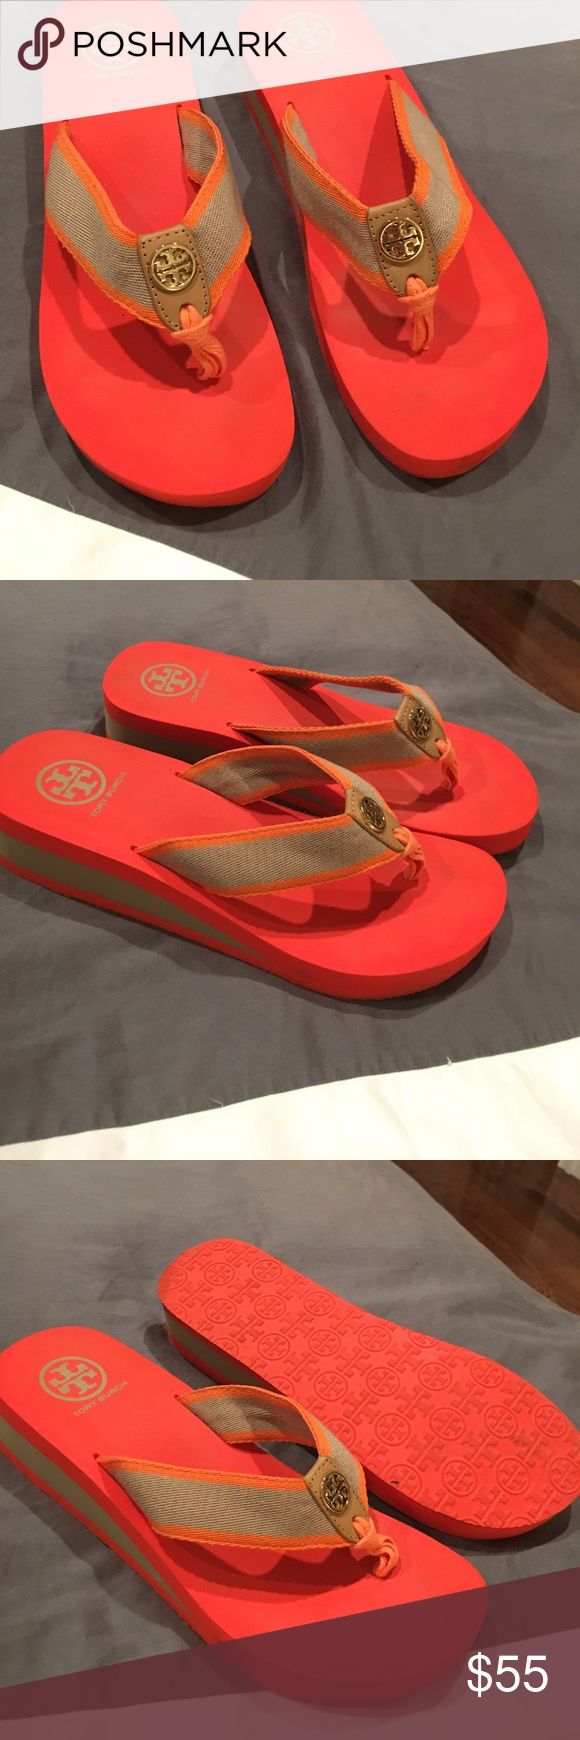 Tory Burch authentic wedge flip flop Authentic Tory Burch wedge flip flop orange and tan sz 10 like new Tory Burch Shoes Sandals